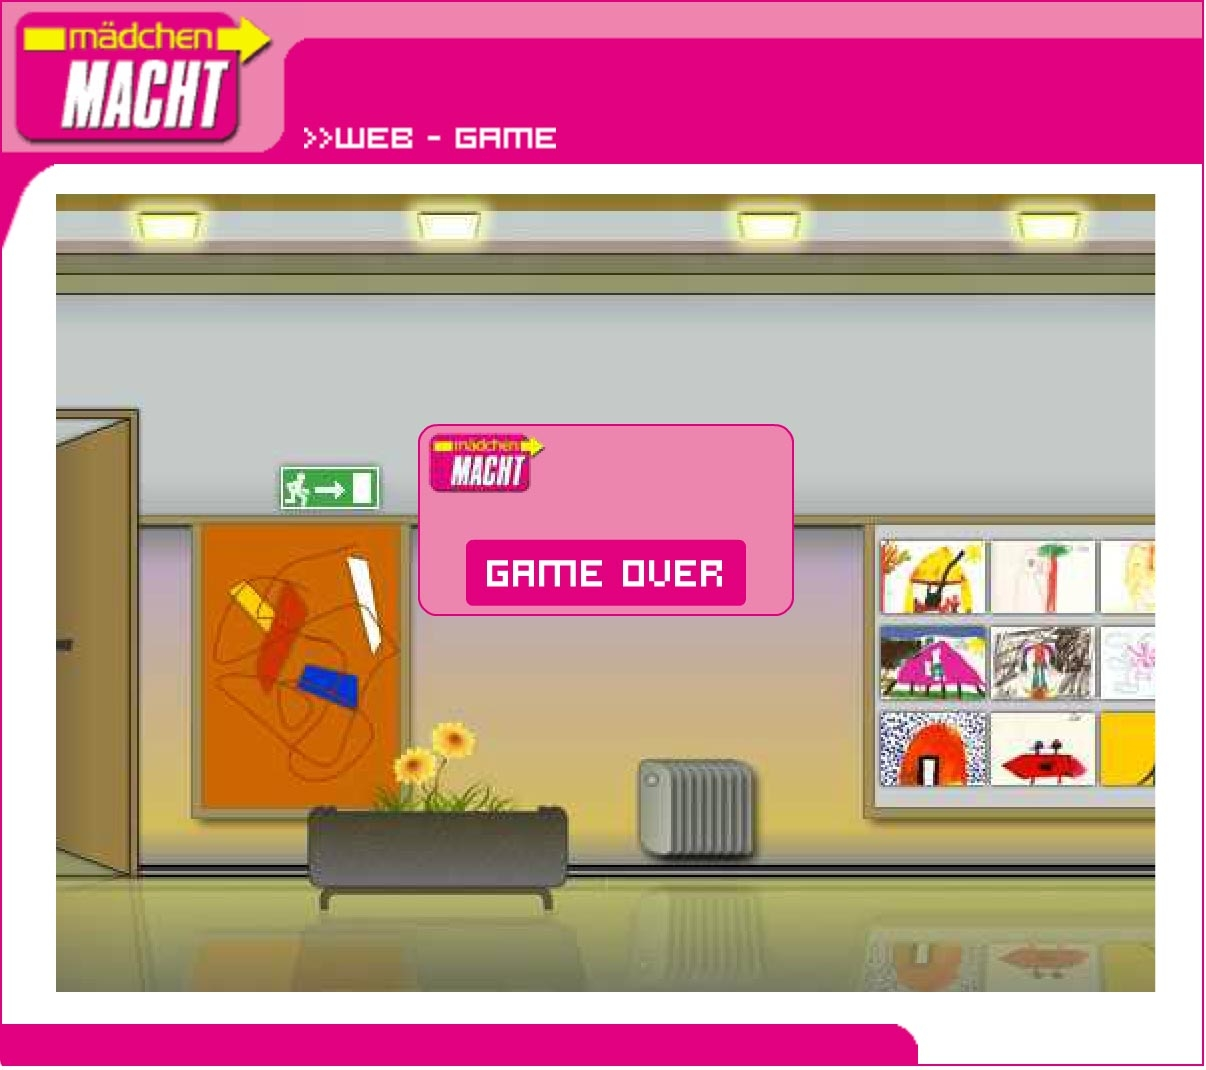 Mädchen macht! | maedchenmacht.at | 2002 | Game (Screen Only 07) © echonet communication